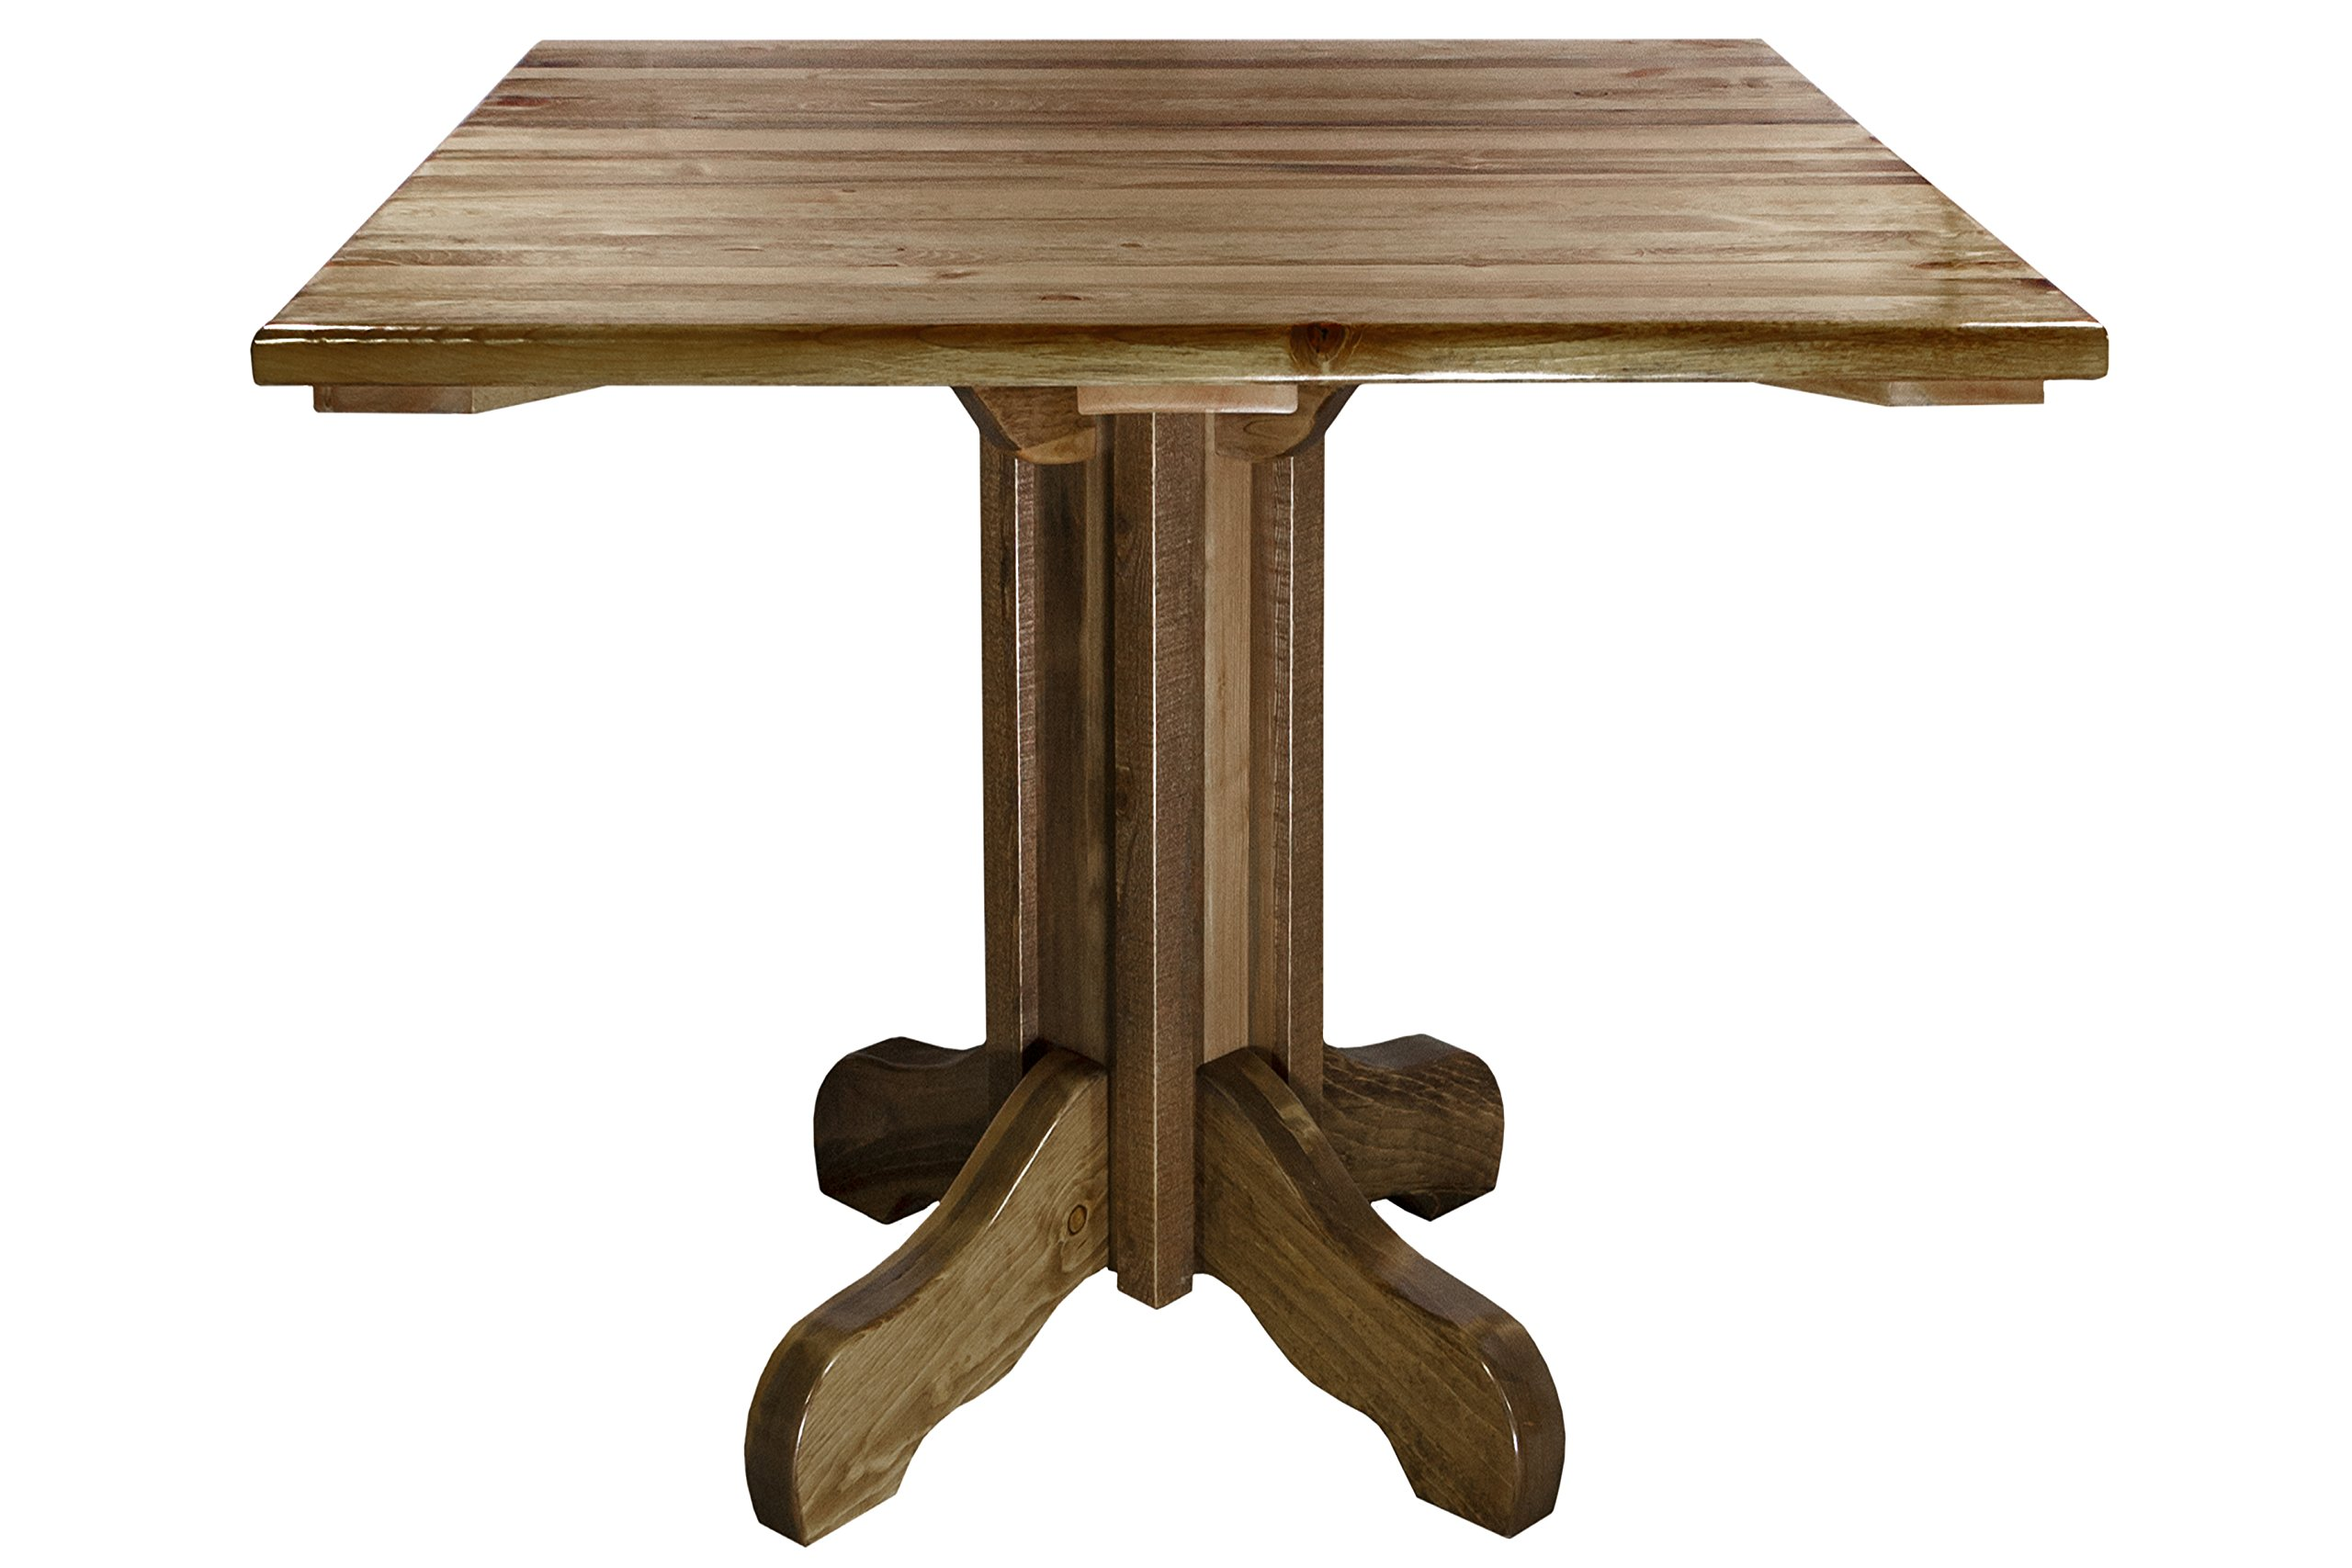 Montana Woodworks Homestead Collection Center Pedestal Table with Square Table Top, Stain and Lacquer Finish